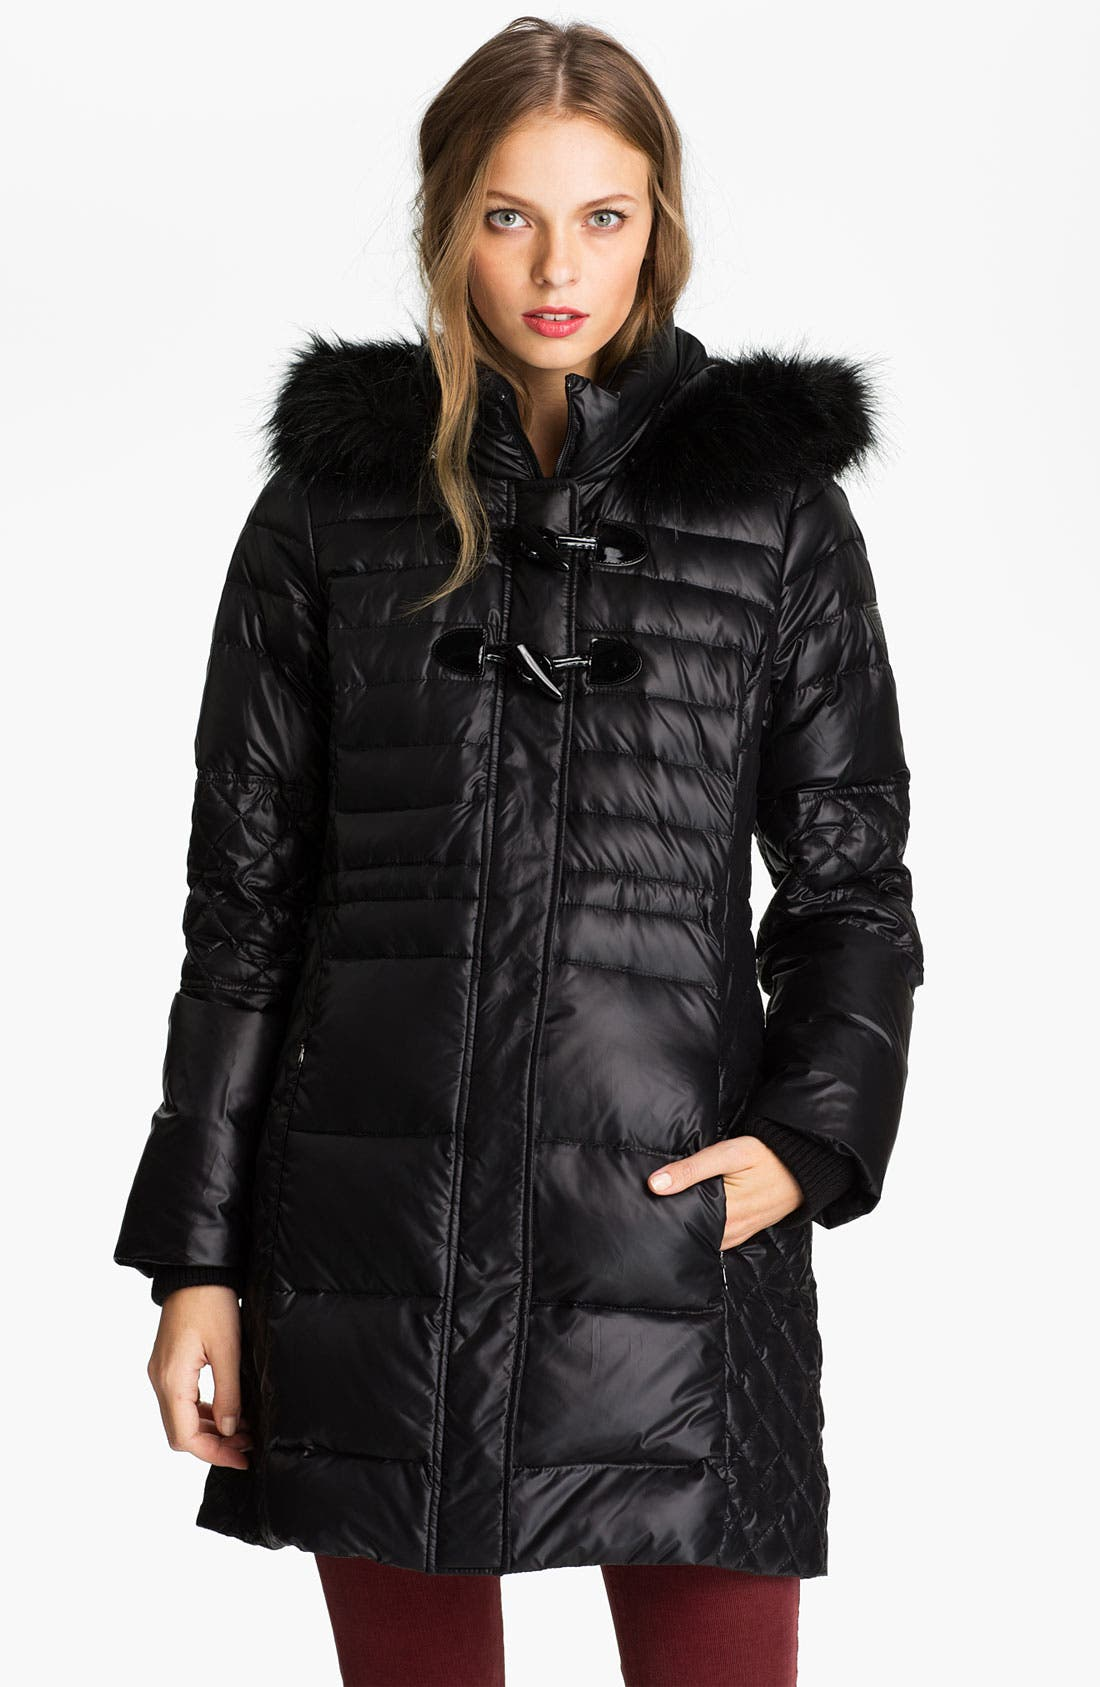 Alternate Image 1 Selected - GUESS Quilted Coat with Faux Fur Trim (Online Exclusive)